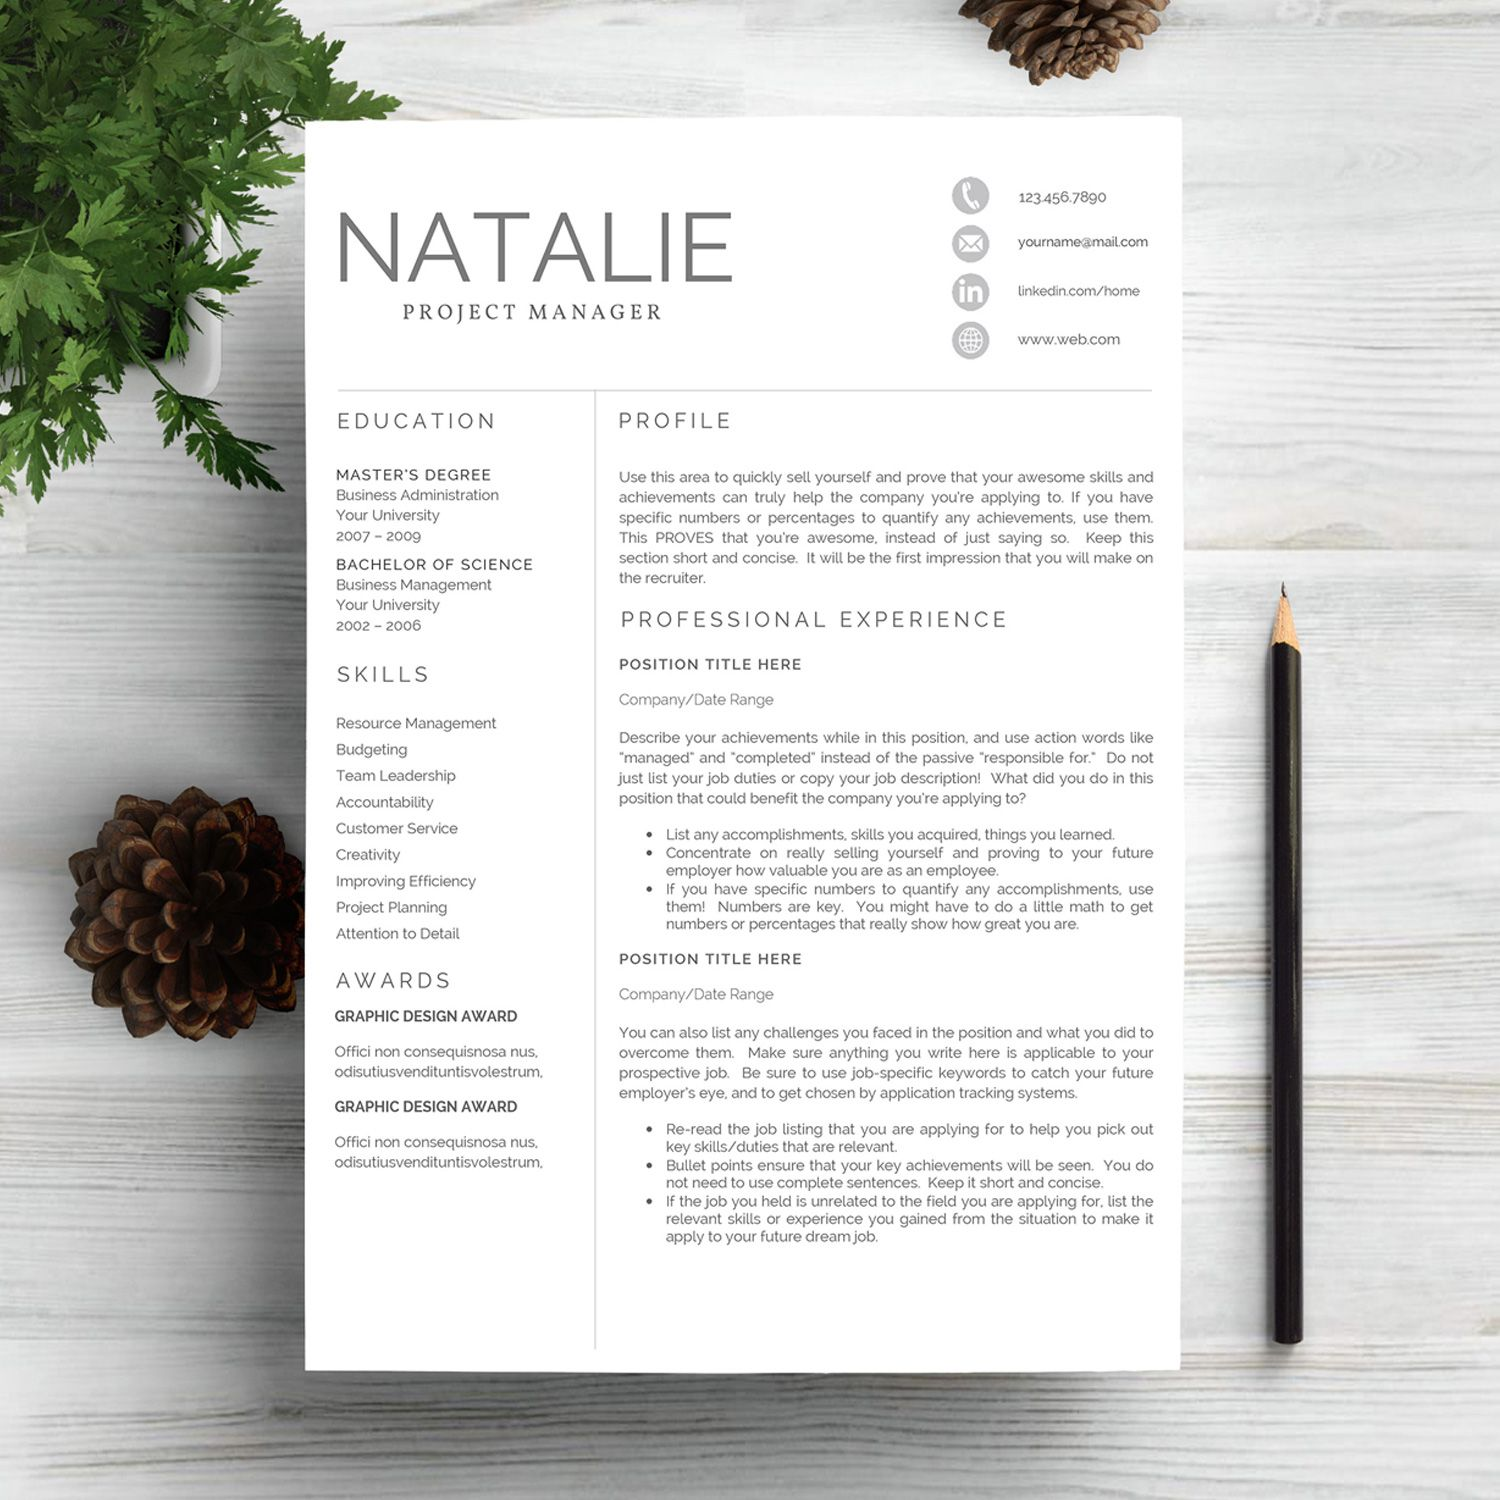 Professional resume template for project manager resume template professional resume template for project manager yelopaper Choice Image